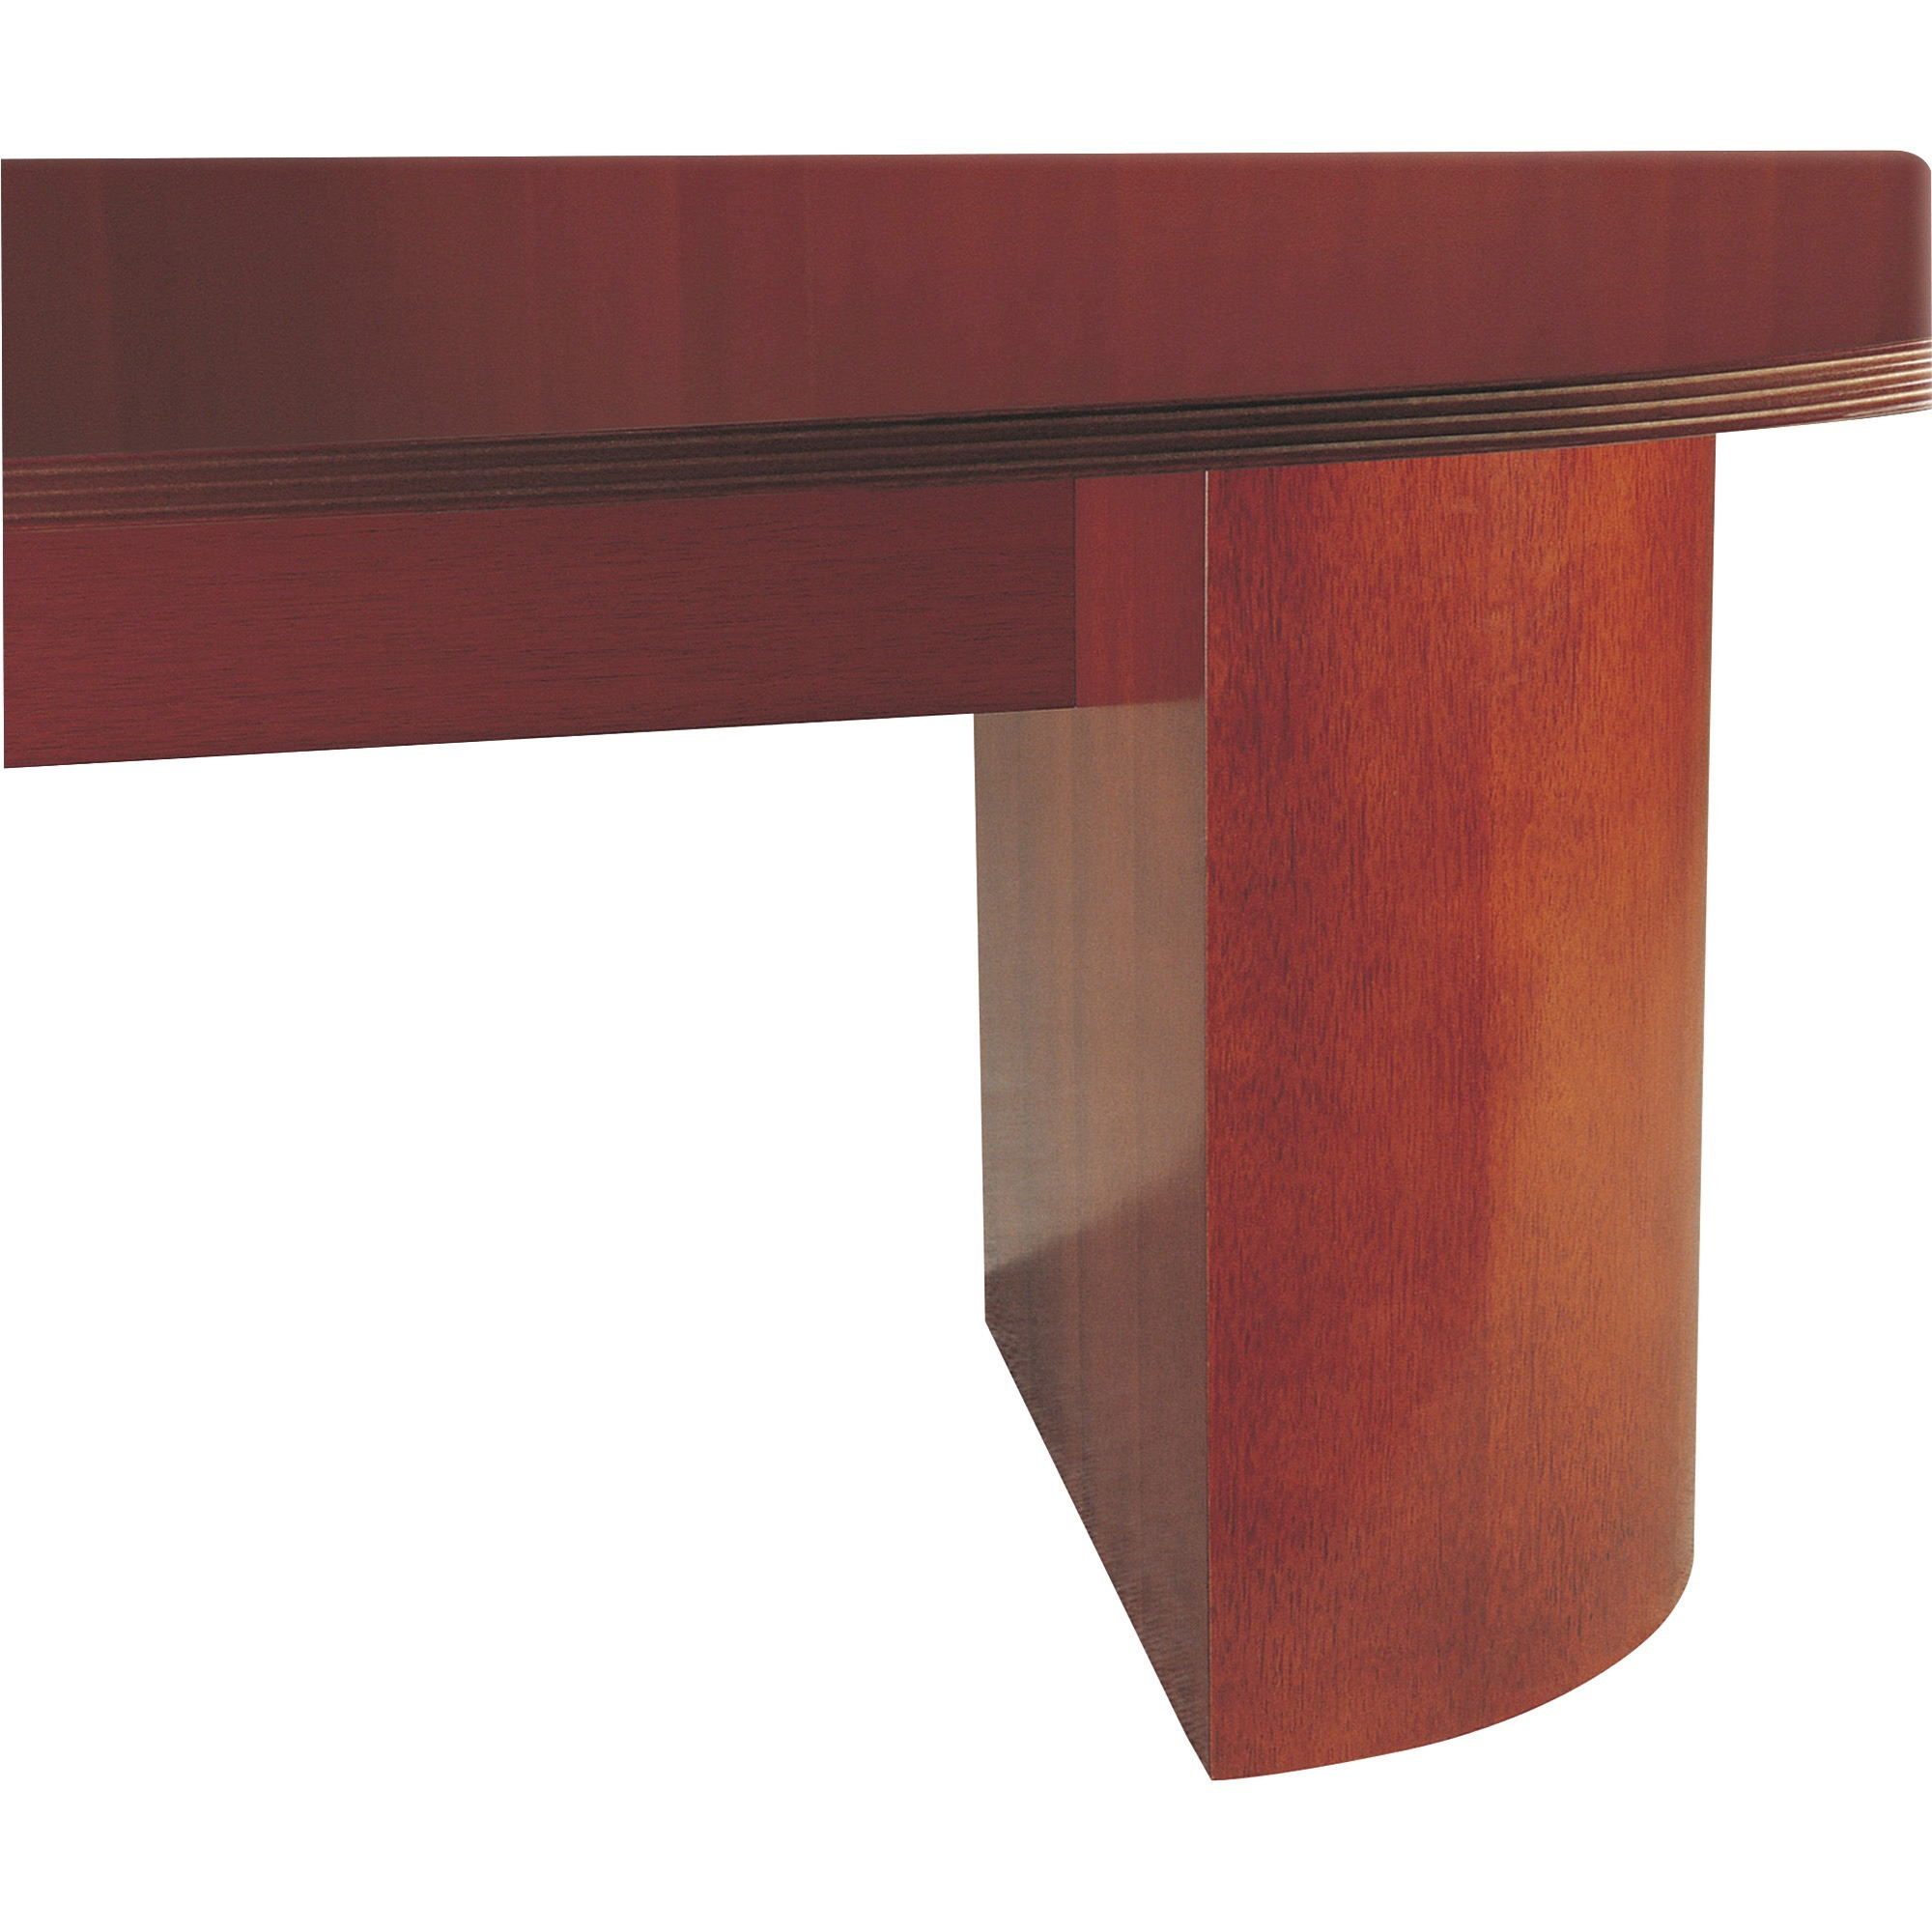 Rudnick Office Furniture Rudnick Contemporary Drum Base 25 X 13 X 28 Material Wood Finish Cherry Veneer